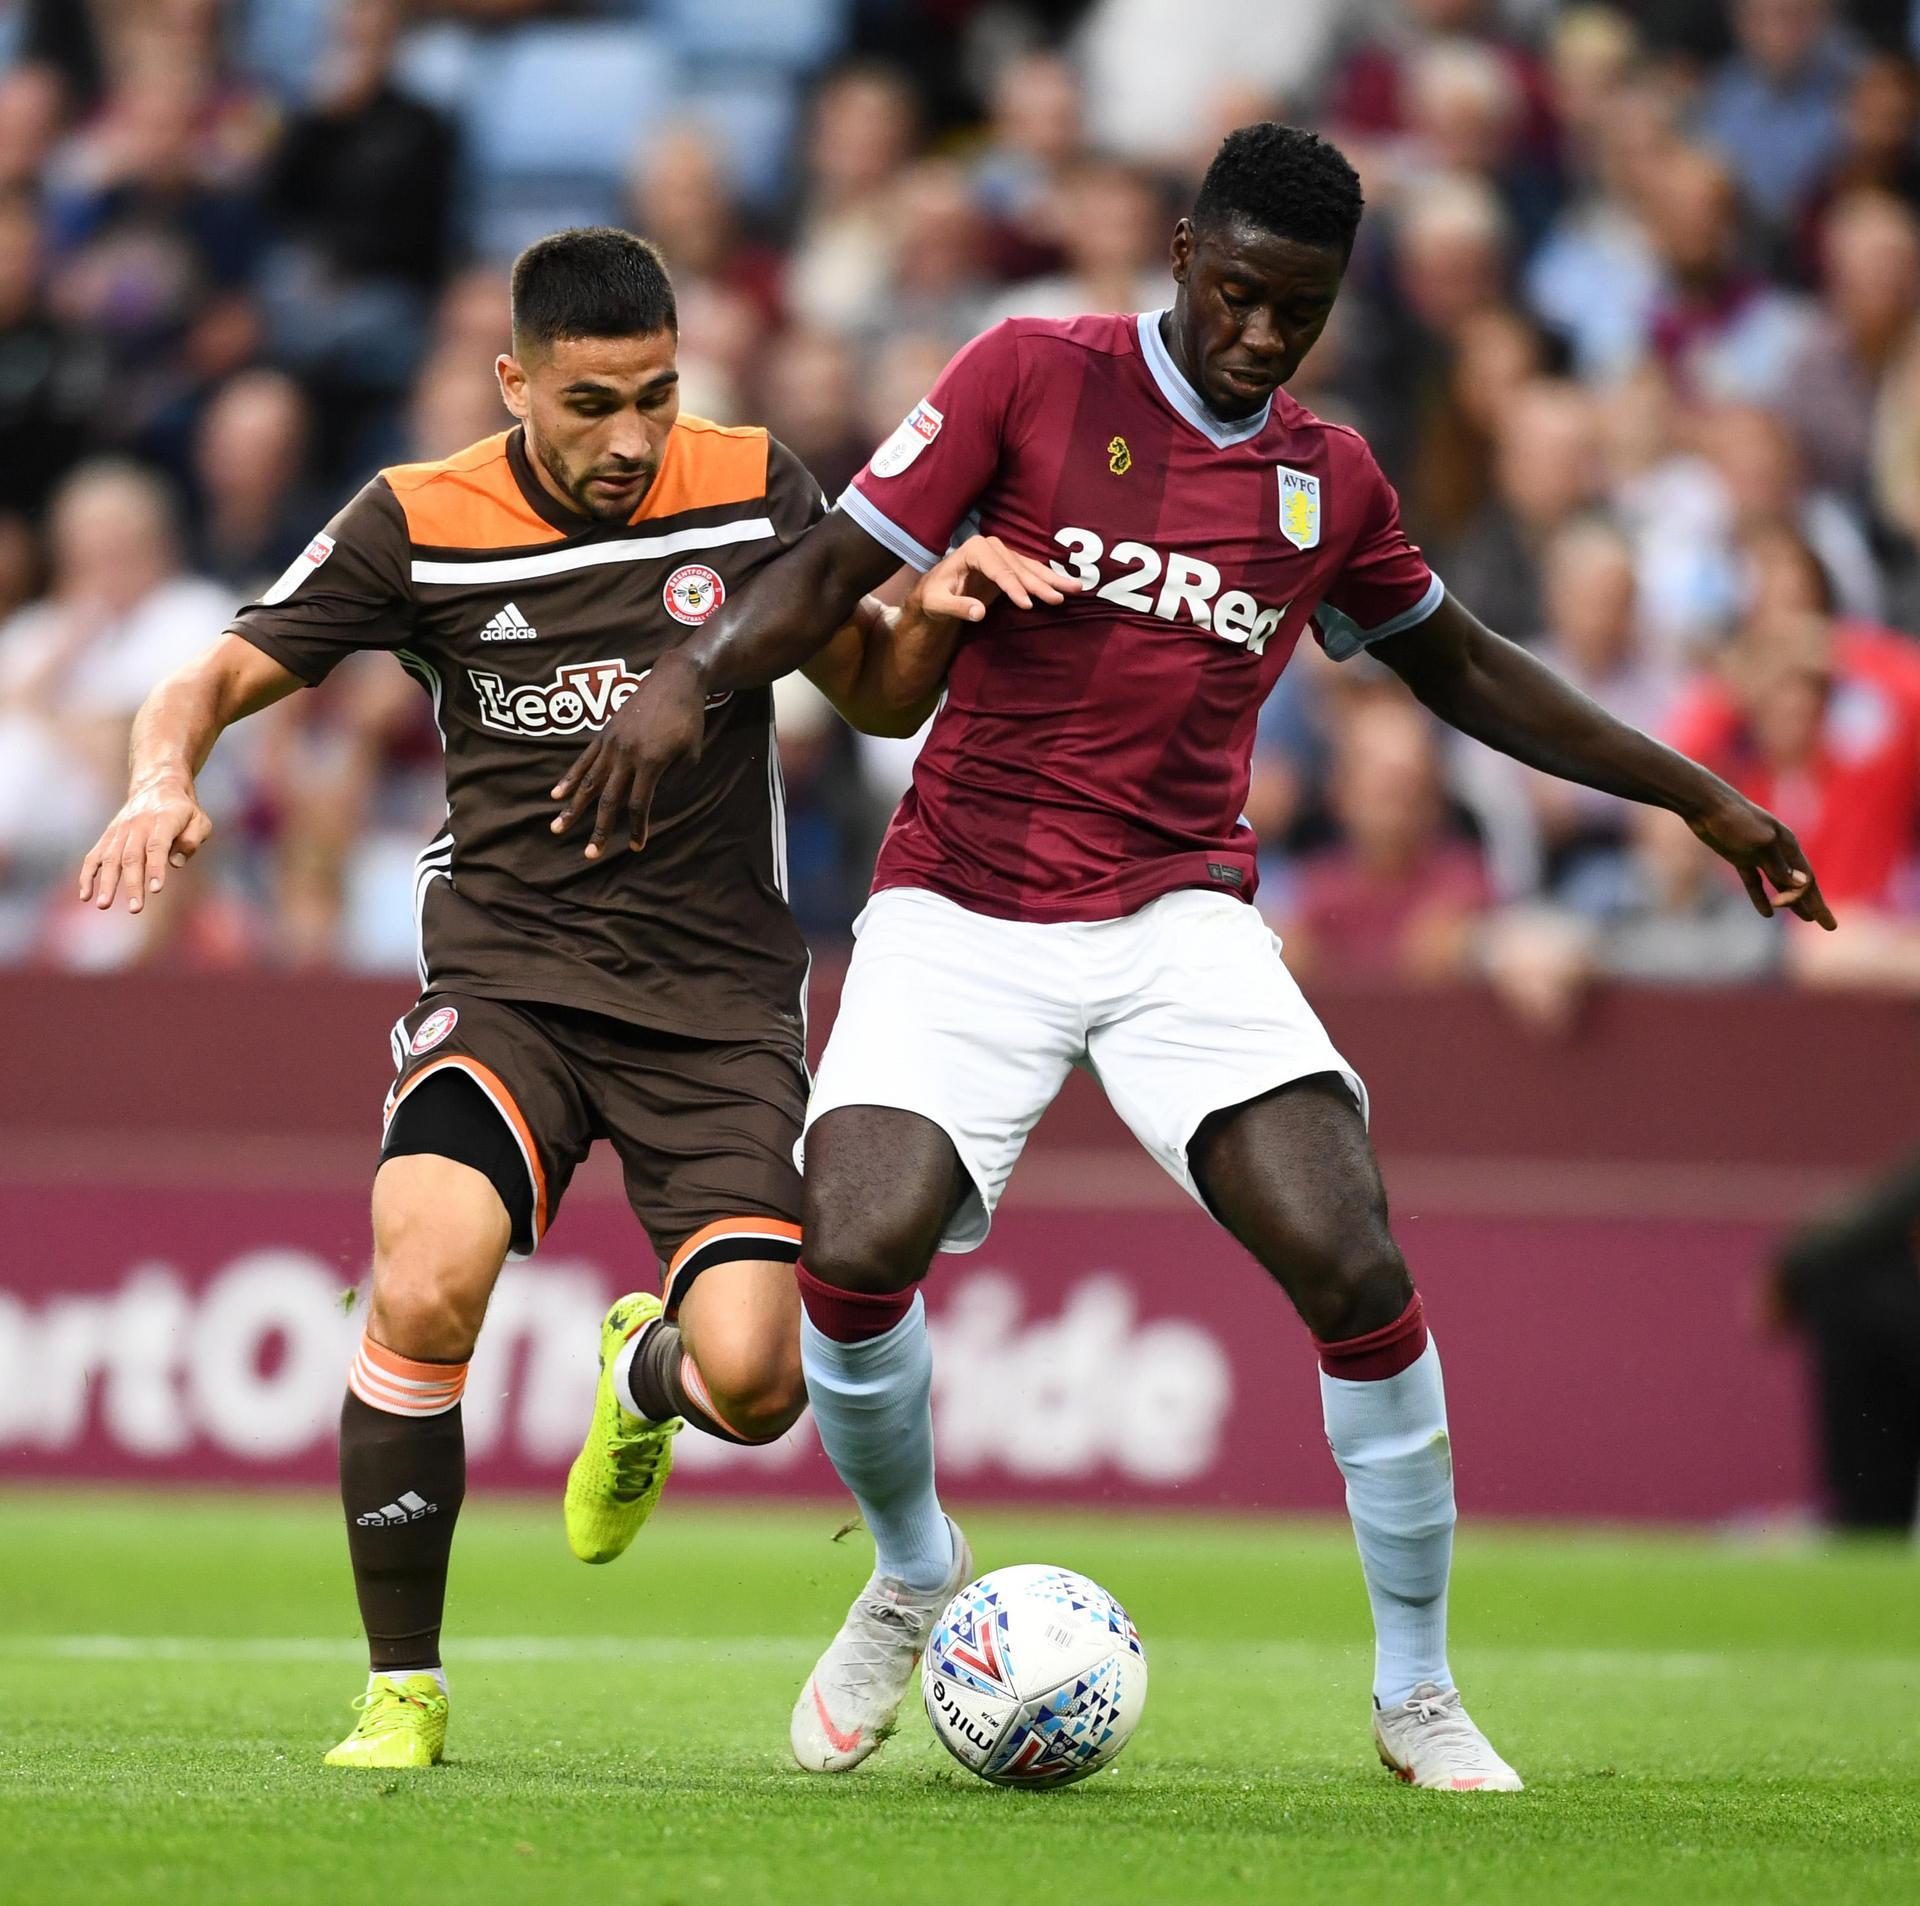 Axel Tuanzebe takes on Neil Maupay of Brentford.